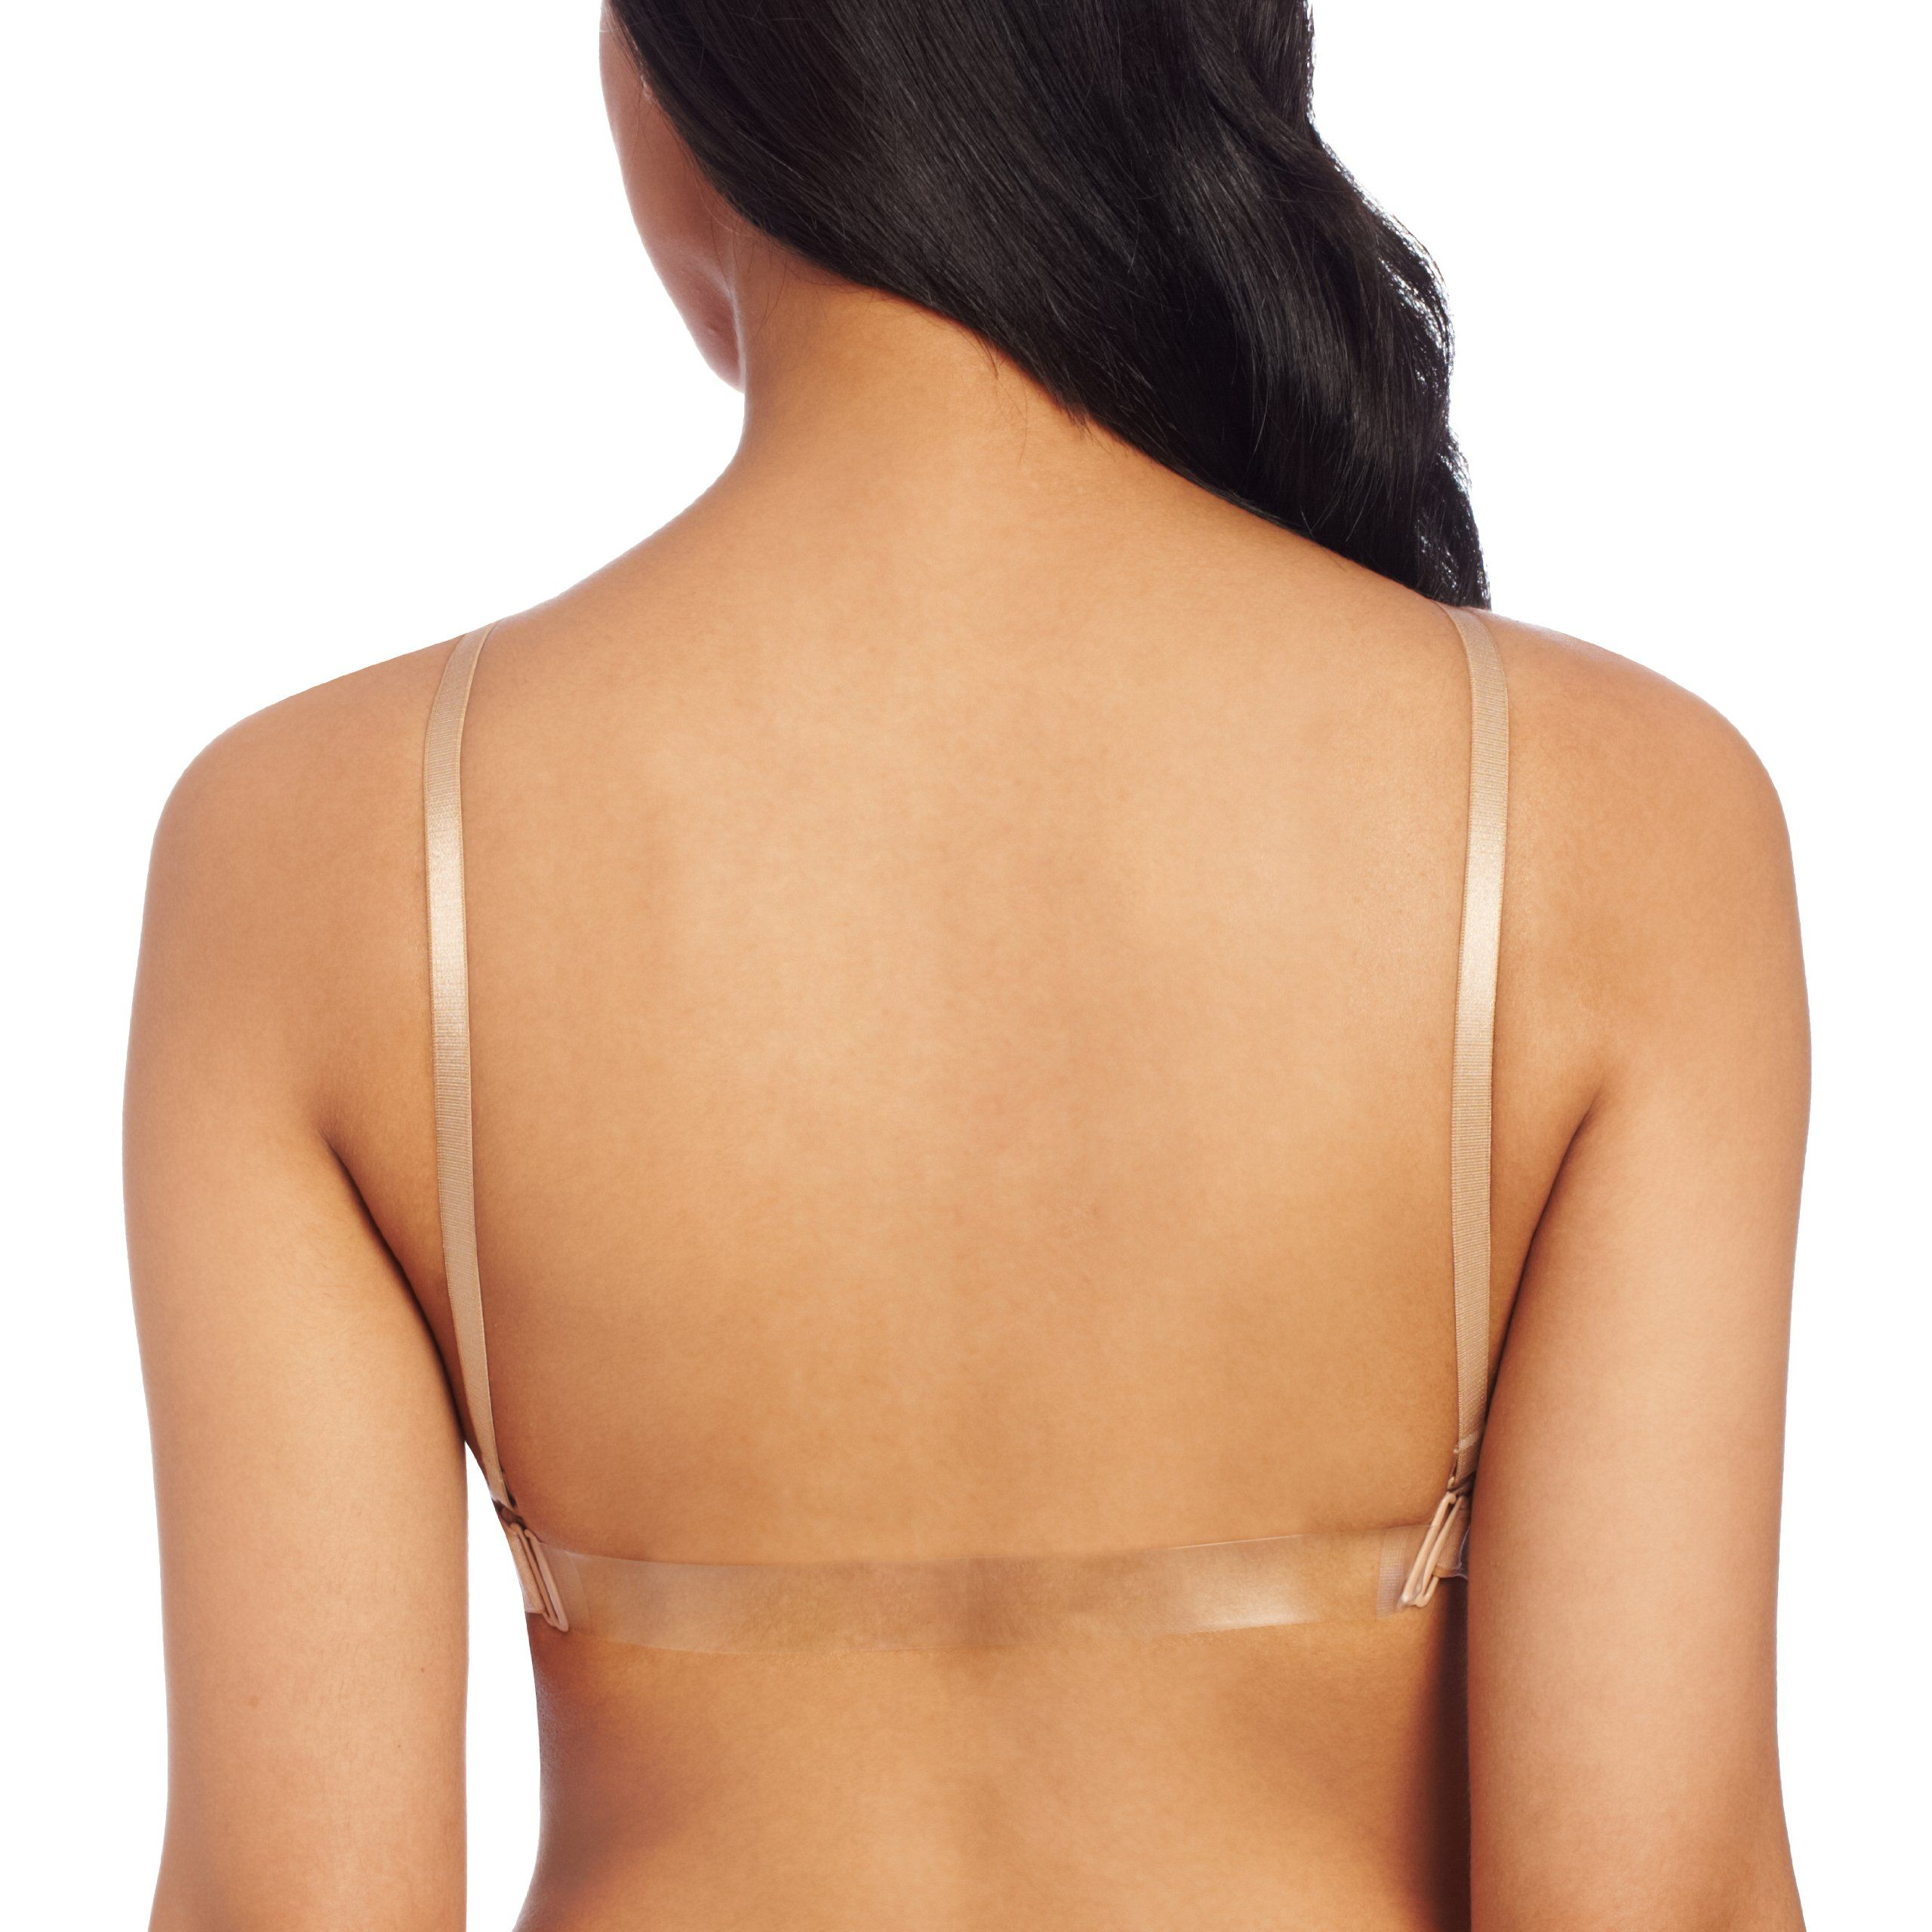 22129c38d2 Capezio womens seamless clear back bra with transition straps nude jpg  2560x2560 Bra with clear back